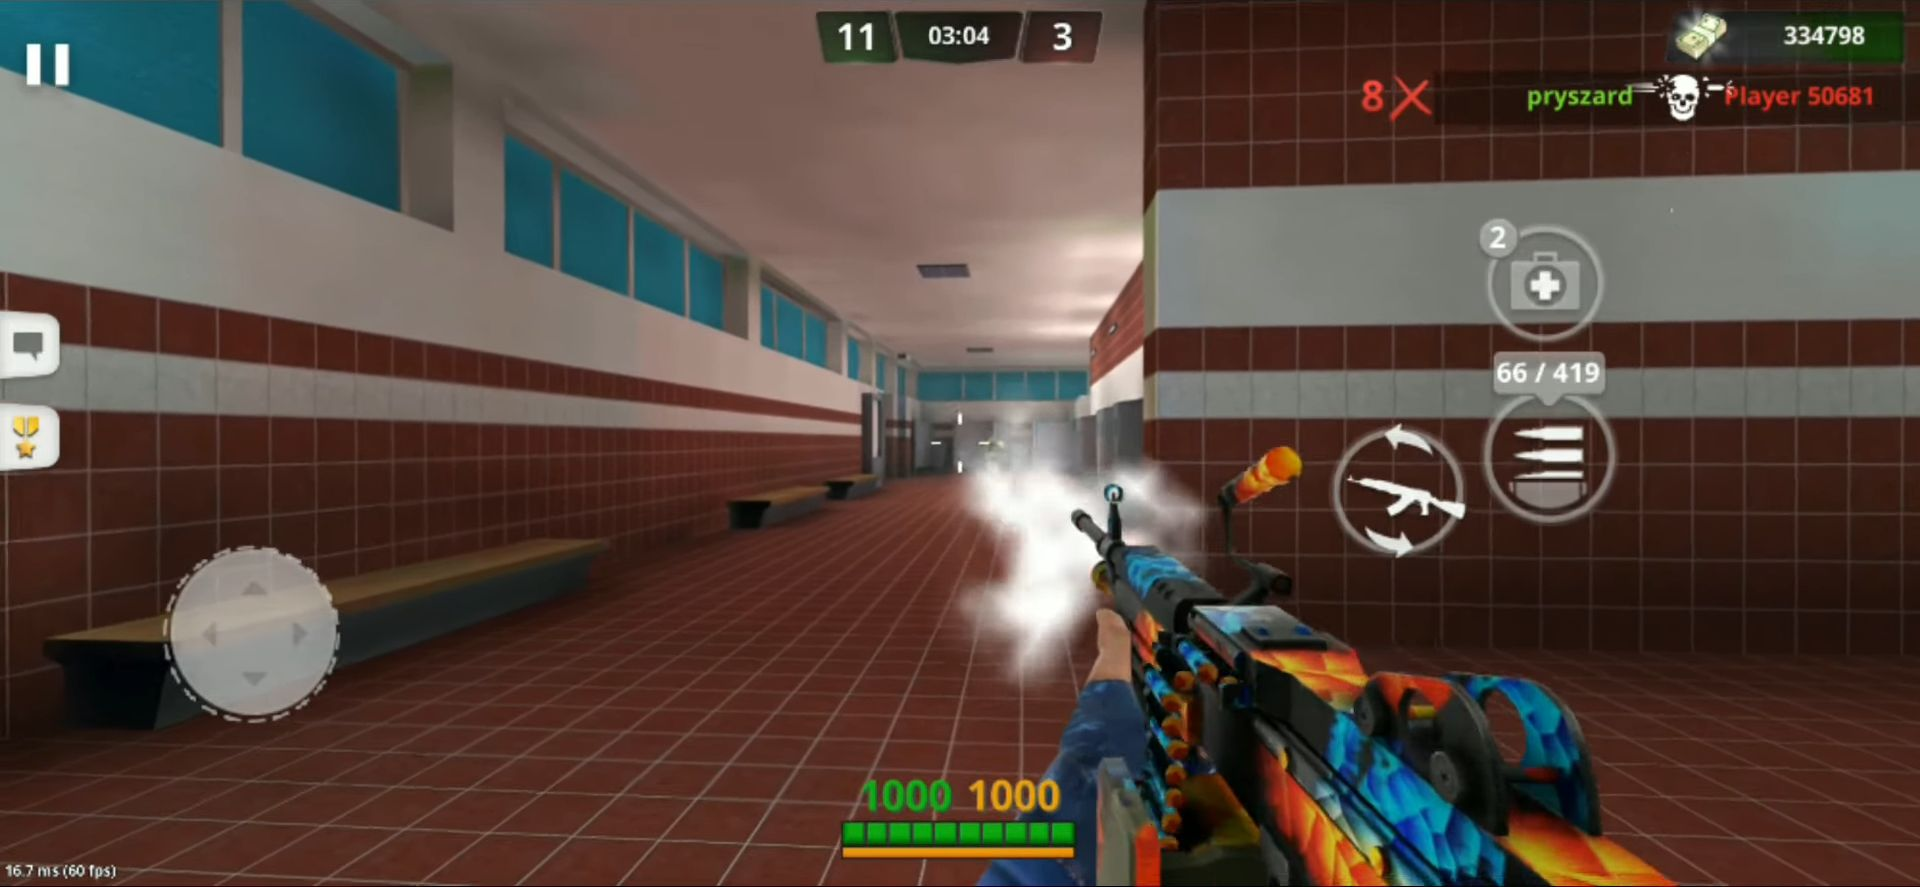 Special Ops: FPS PvP War-Online gun shooting games captura de tela 1